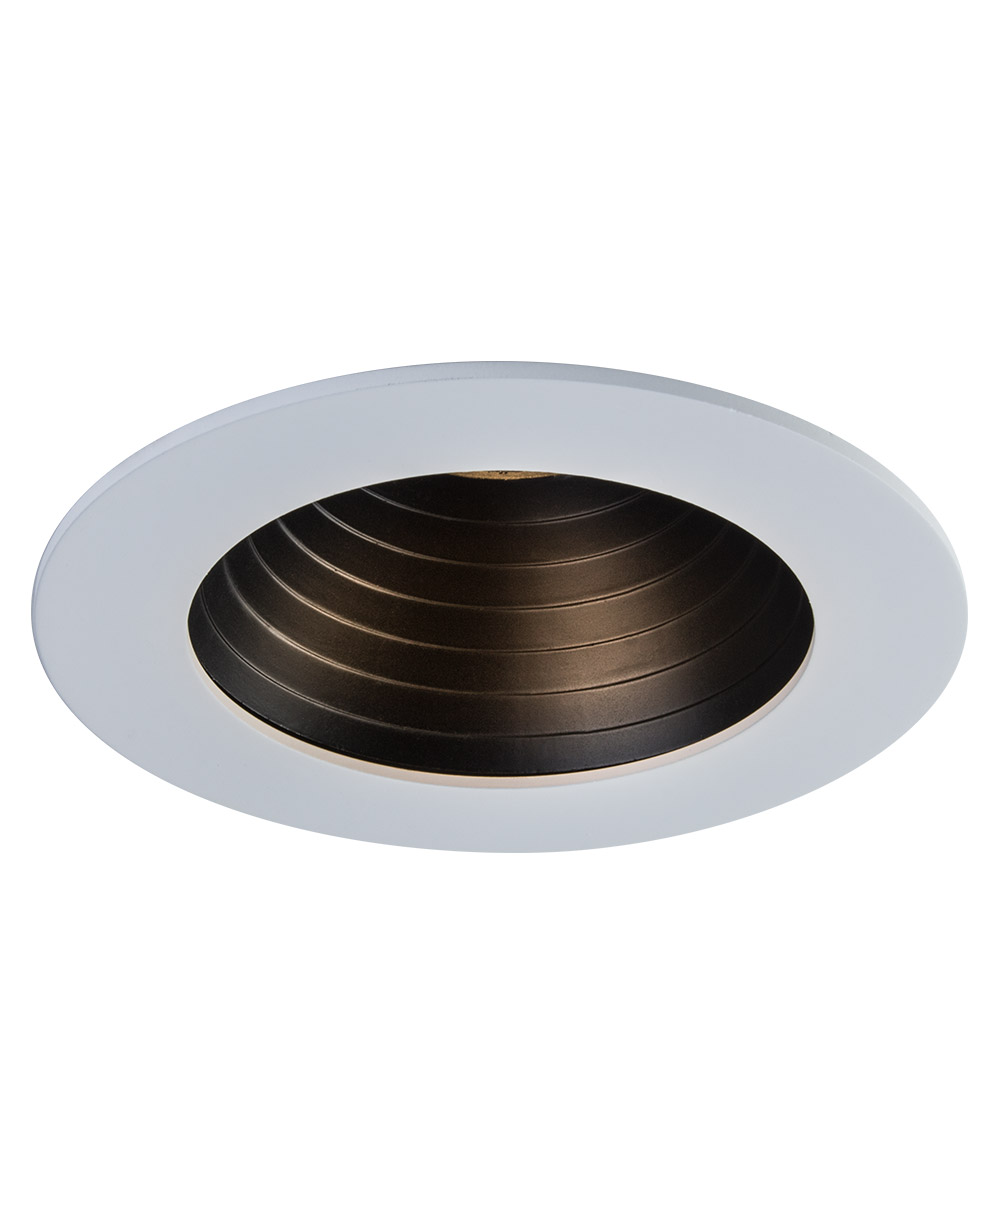 SIGMA 2 Round LED Fixture with Stepped Baffle